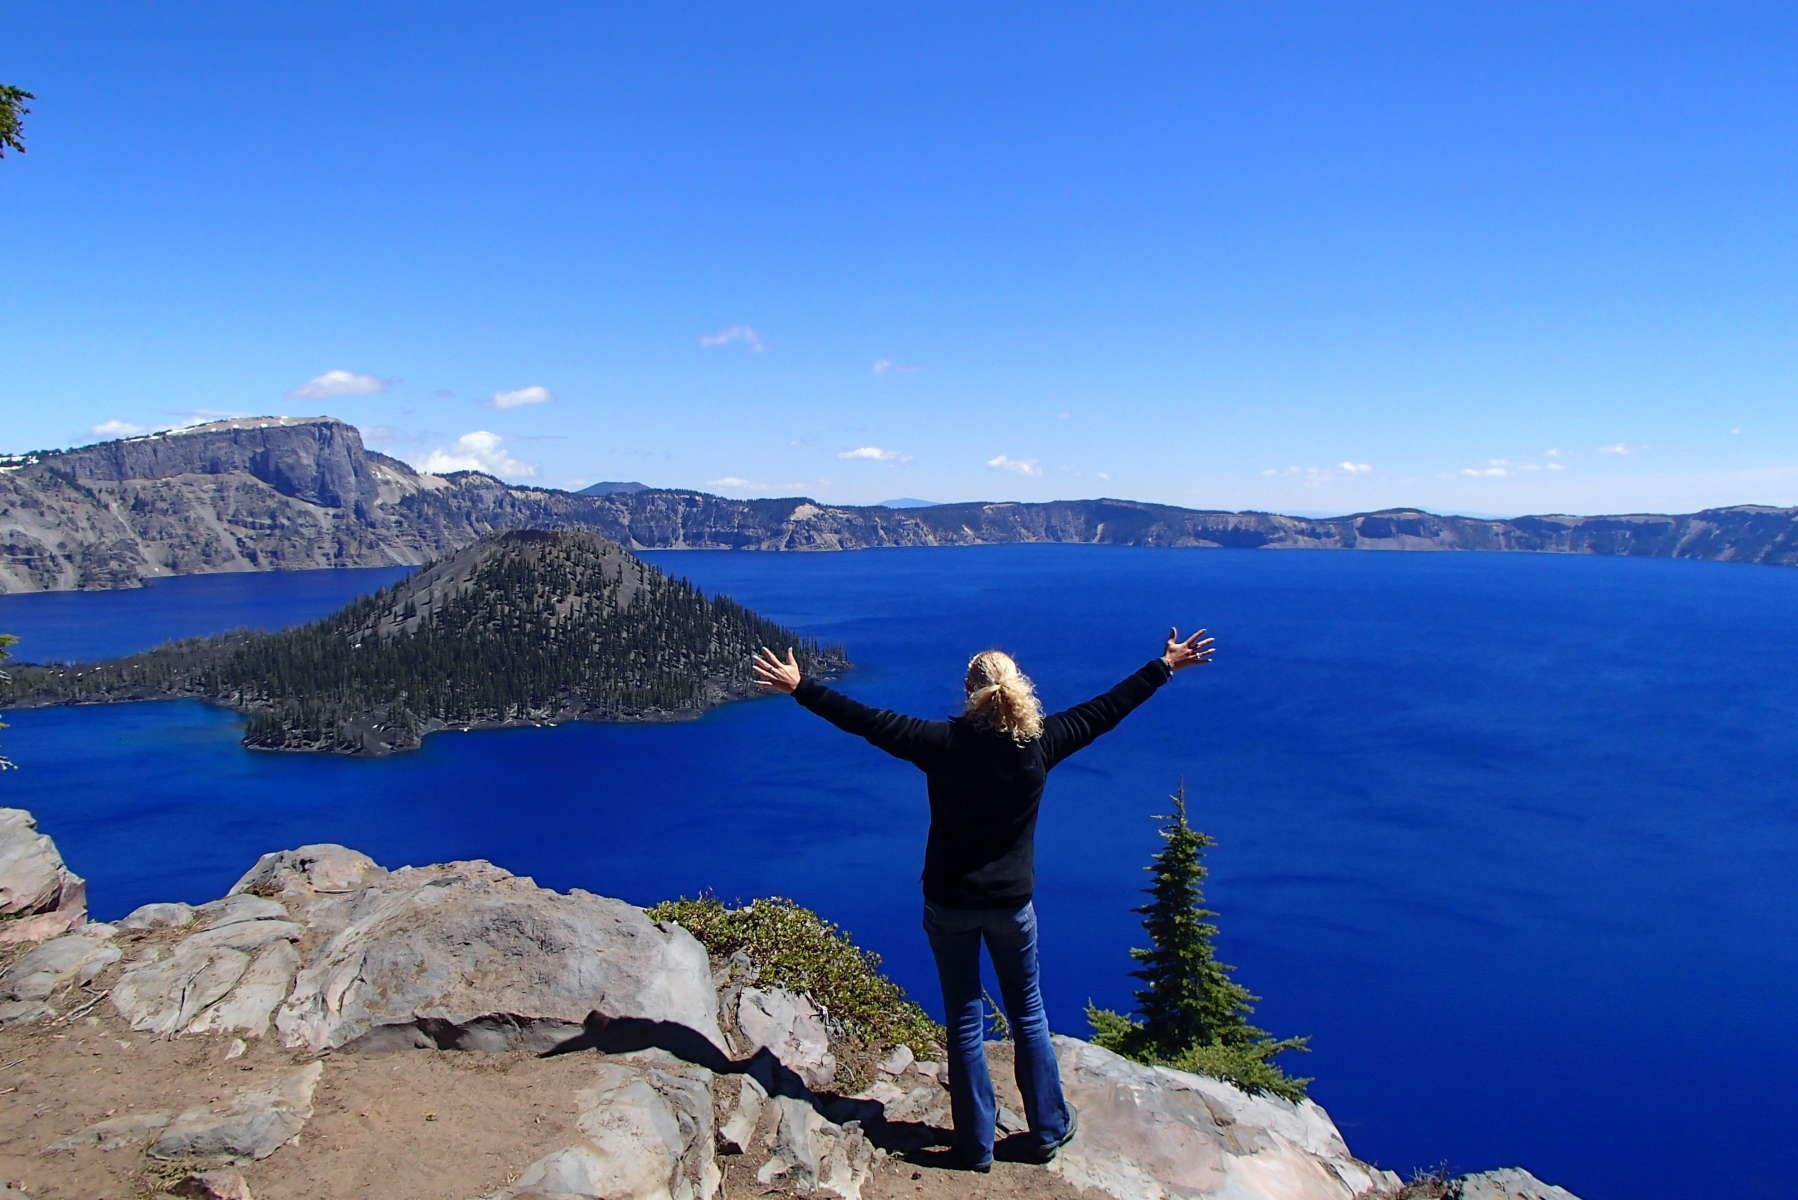 Hipcamp | Crater Lake National Park, OR | Search private and ... #craterlakenationalpark Hipcamp | Crater Lake National Park, OR | Search private and ... #craterlakenationalpark Hipcamp | Crater Lake National Park, OR | Search private and ... #craterlakenationalpark Hipcamp | Crater Lake National Park, OR | Search private and ... #craterlakeoregon